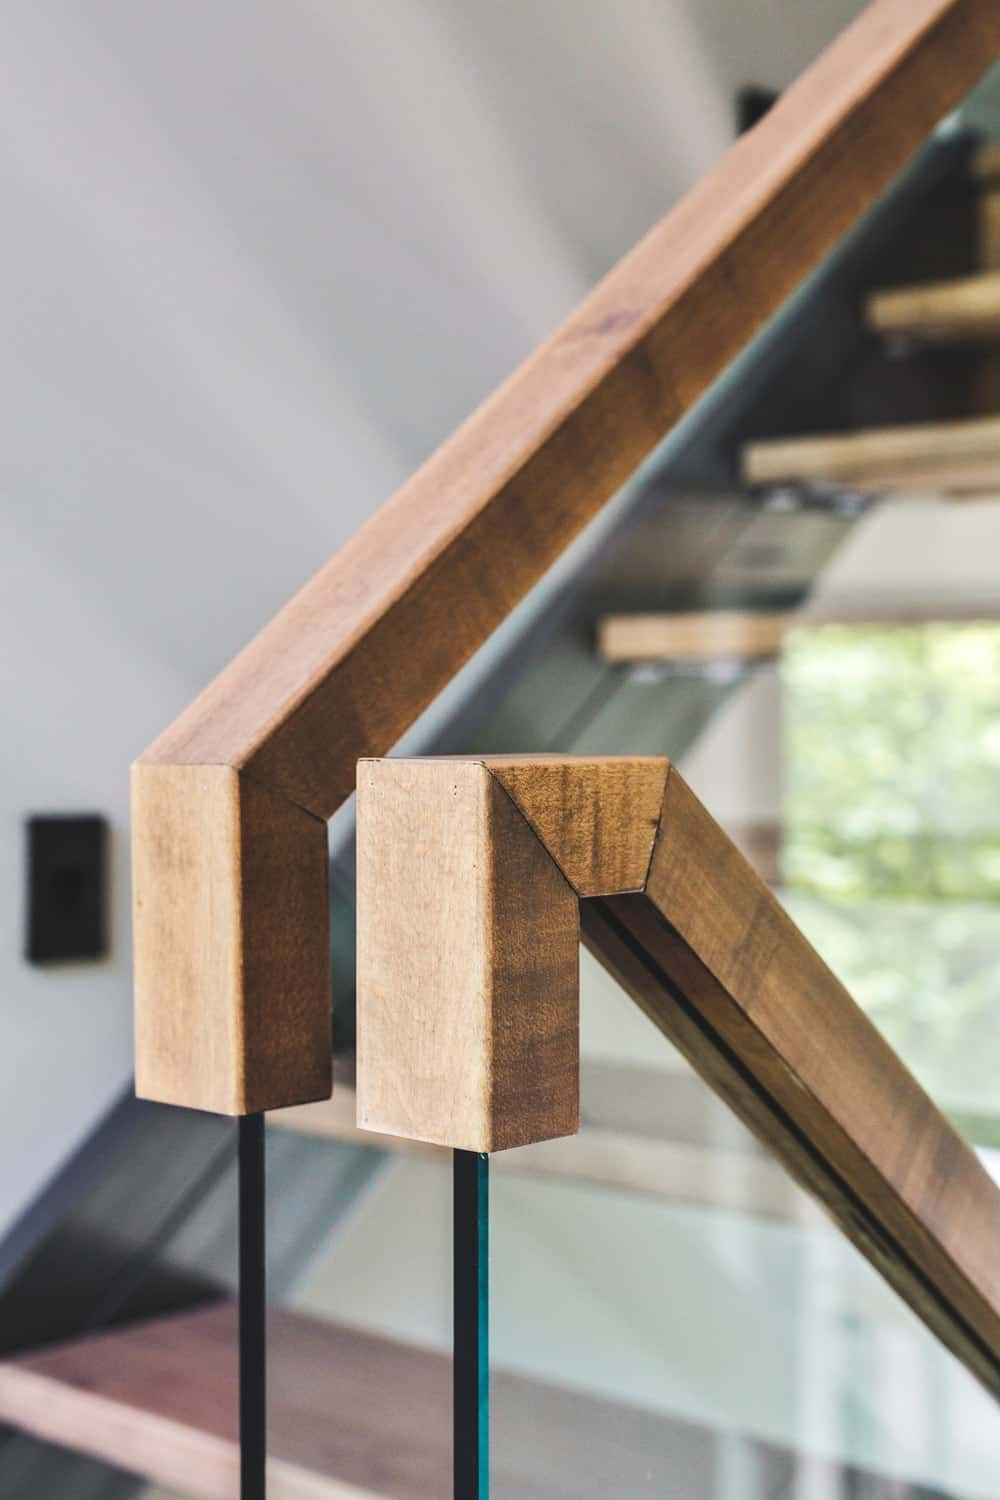 Another shot at the staircase focusing on hardwood handrail. Photo Credit: Ulysse Lemerise Bouchard